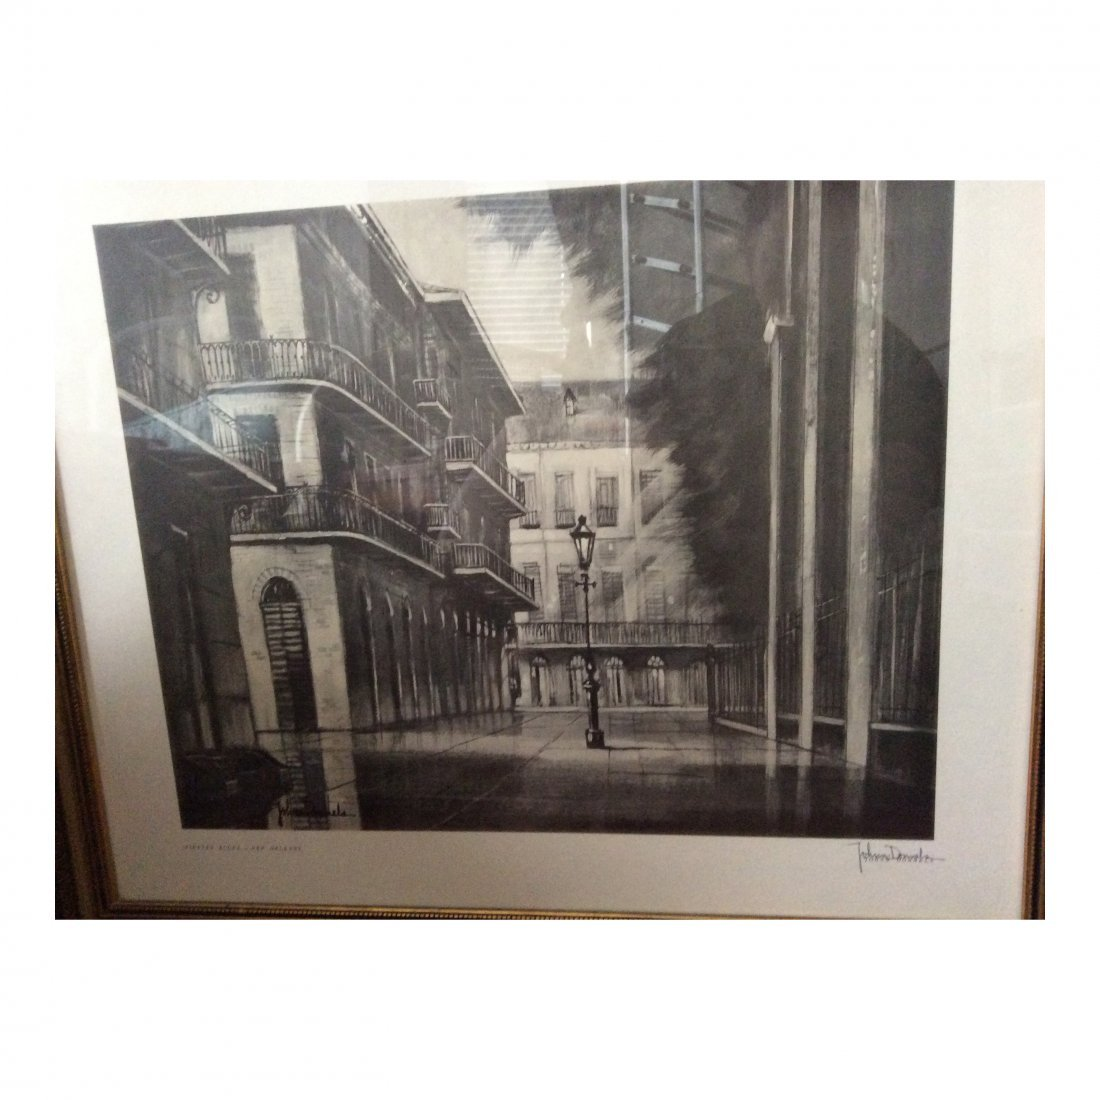 John Donnels: Print of Pirates Alley, 1960's